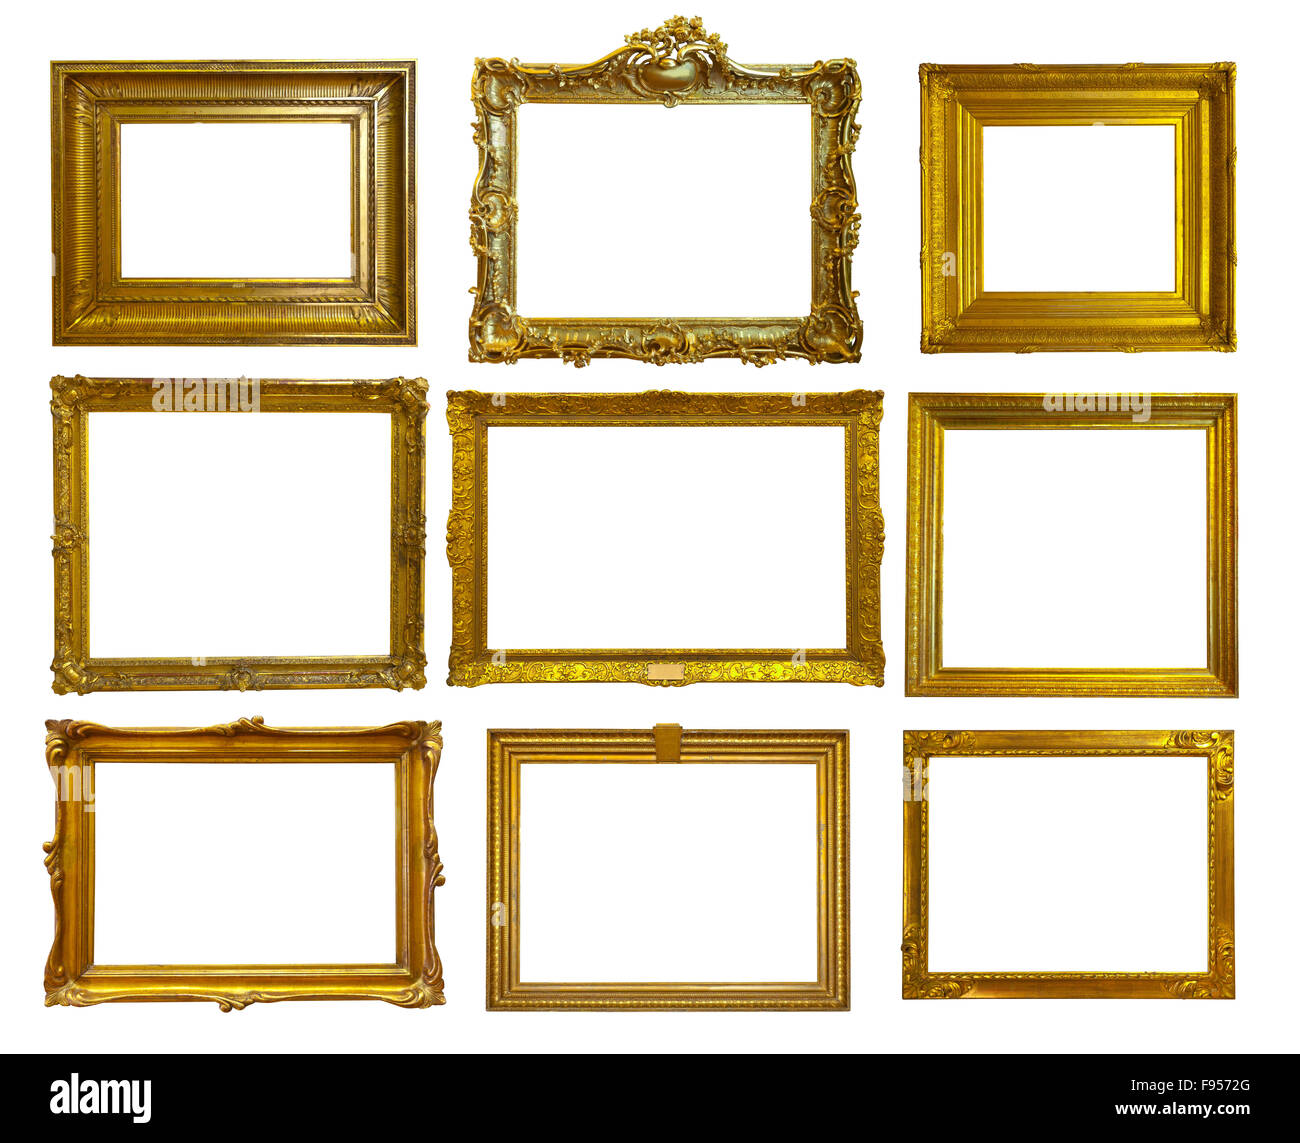 Set Of 9 Gold Picture Frames Isolated Over White Background With Clipping Path